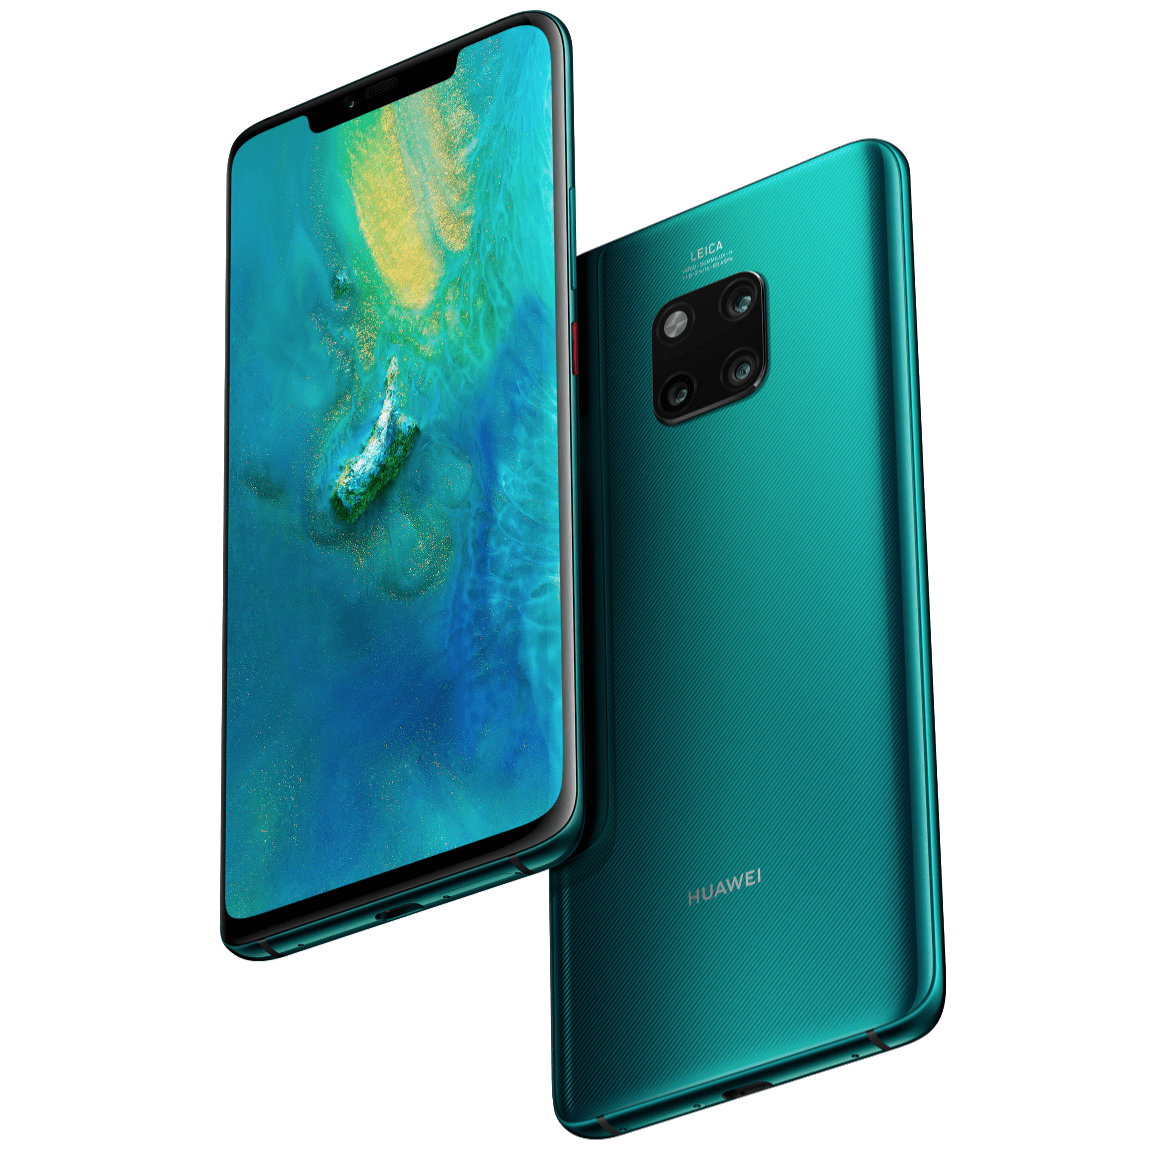 7373a81e694 Huawei Mate 20 Pro review: Surprisingly, almost perfect